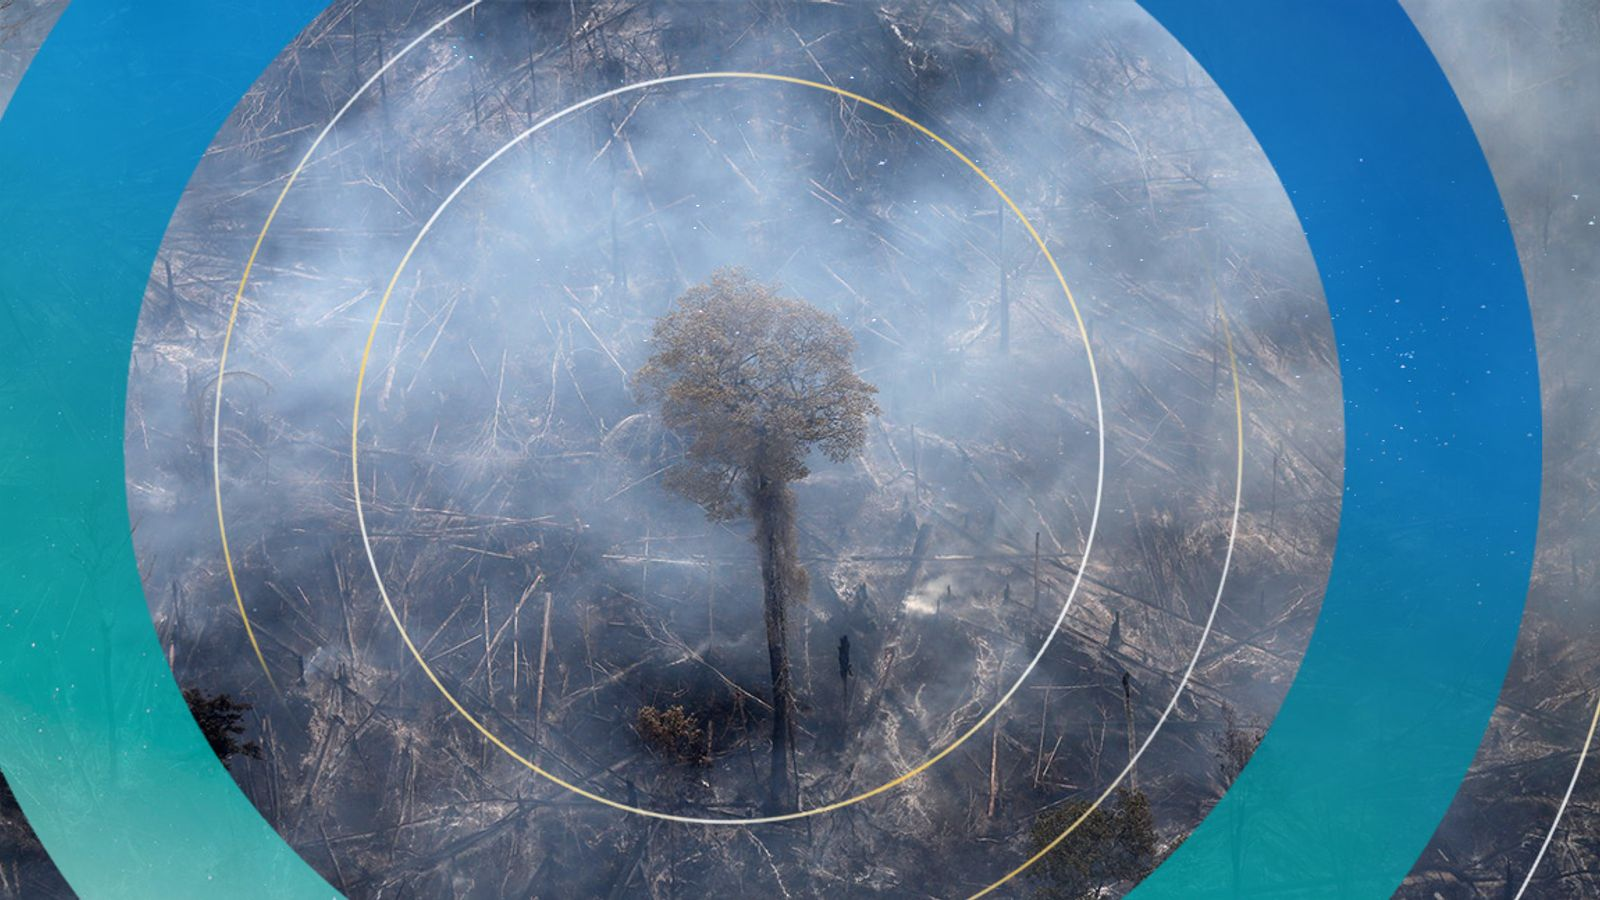 Climate change: Household banks have invested billions in firms involved in deforestation, report claims